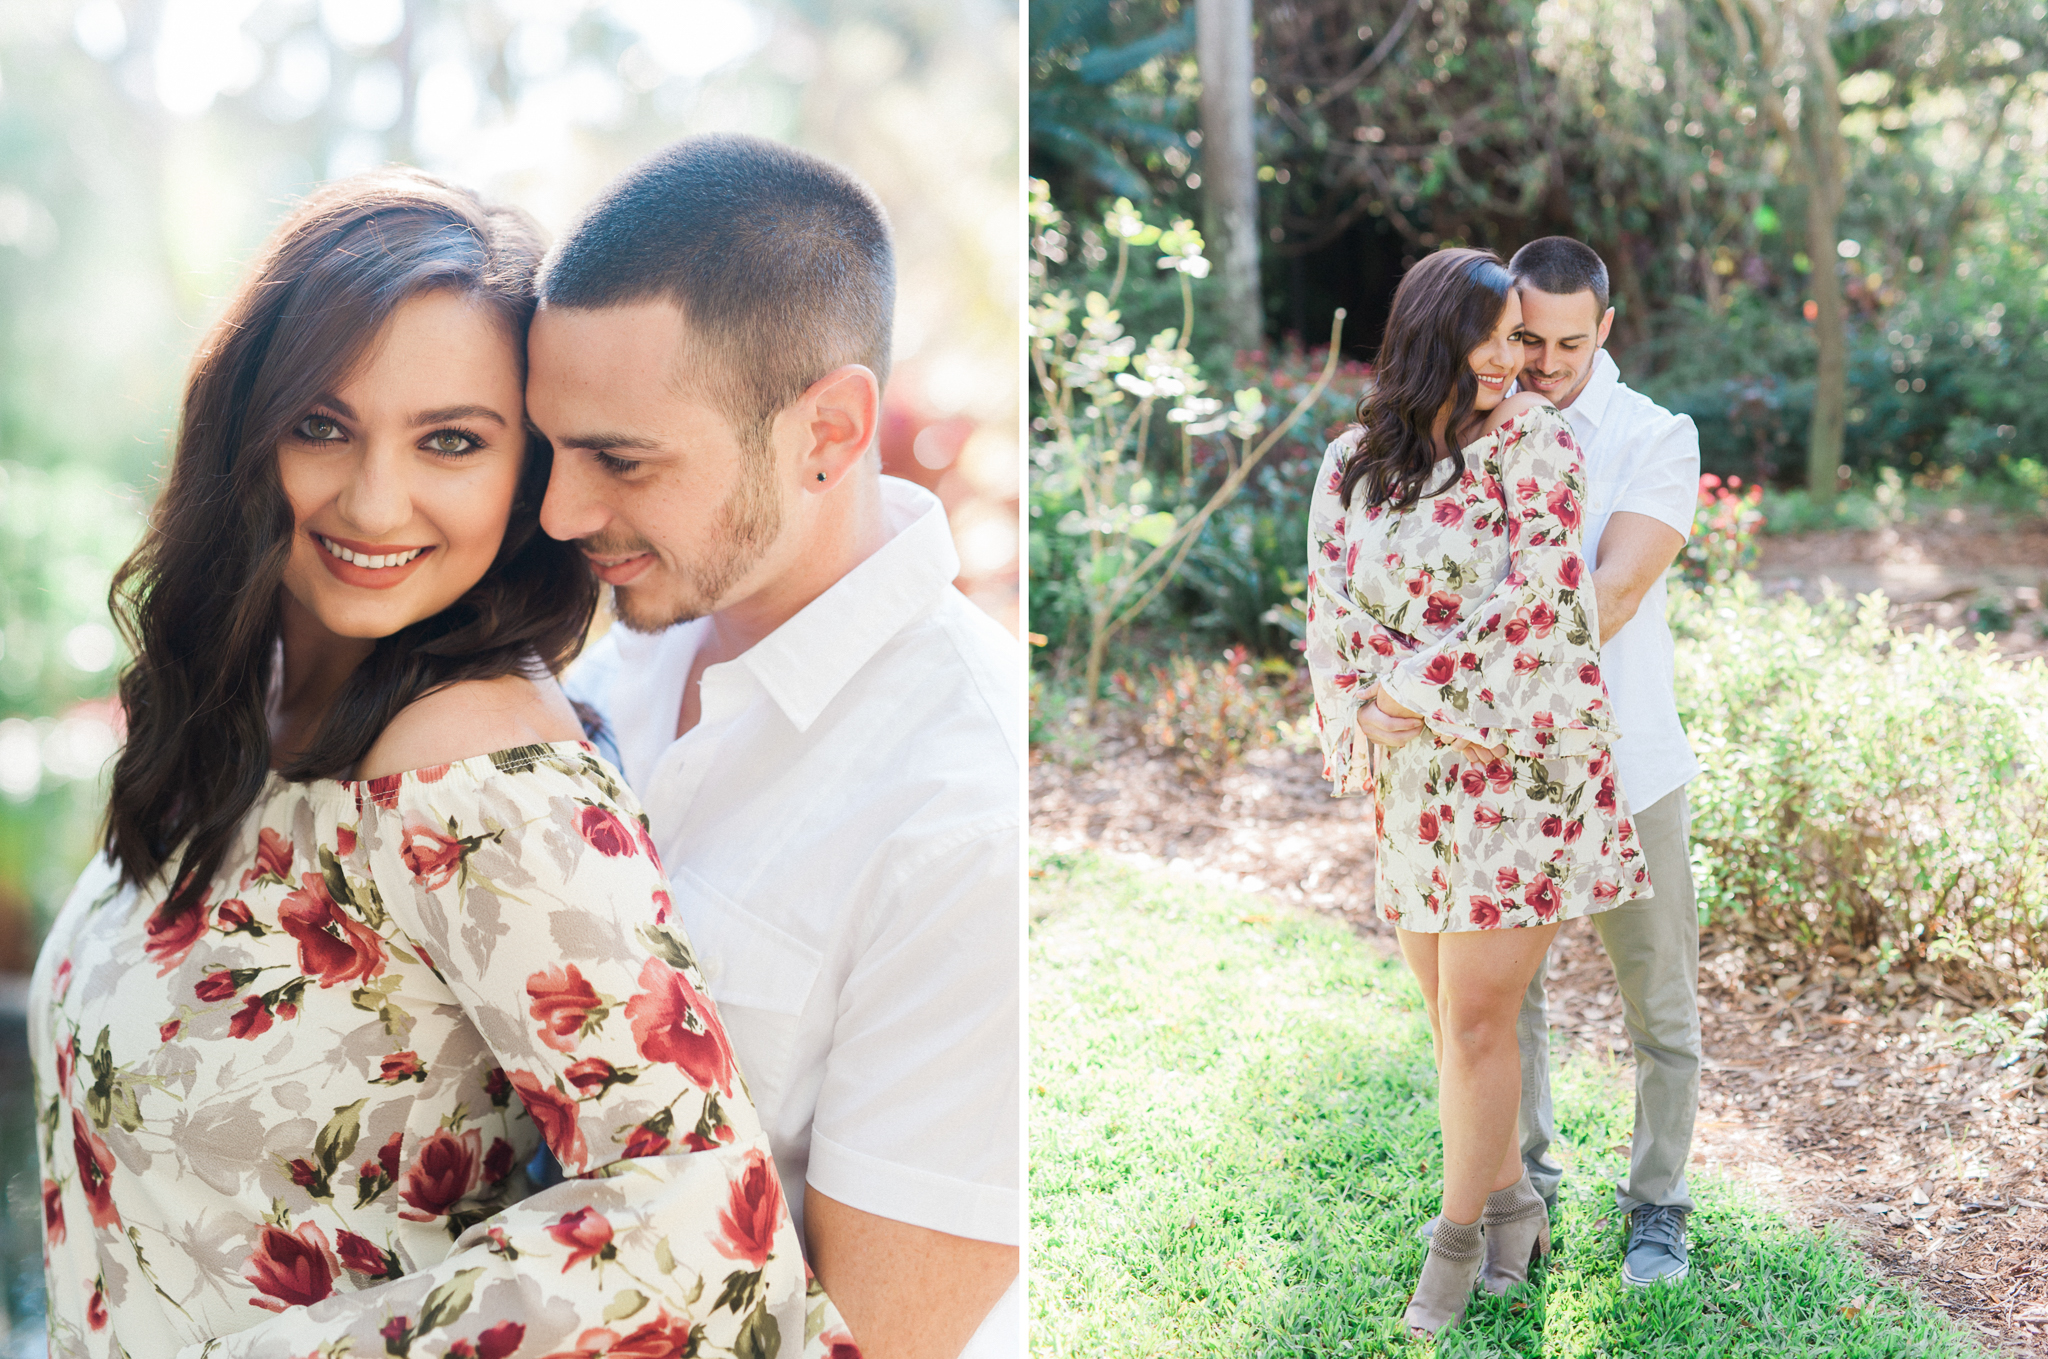 Caitlyn+Mike Engagement Session-WG-6.jpg